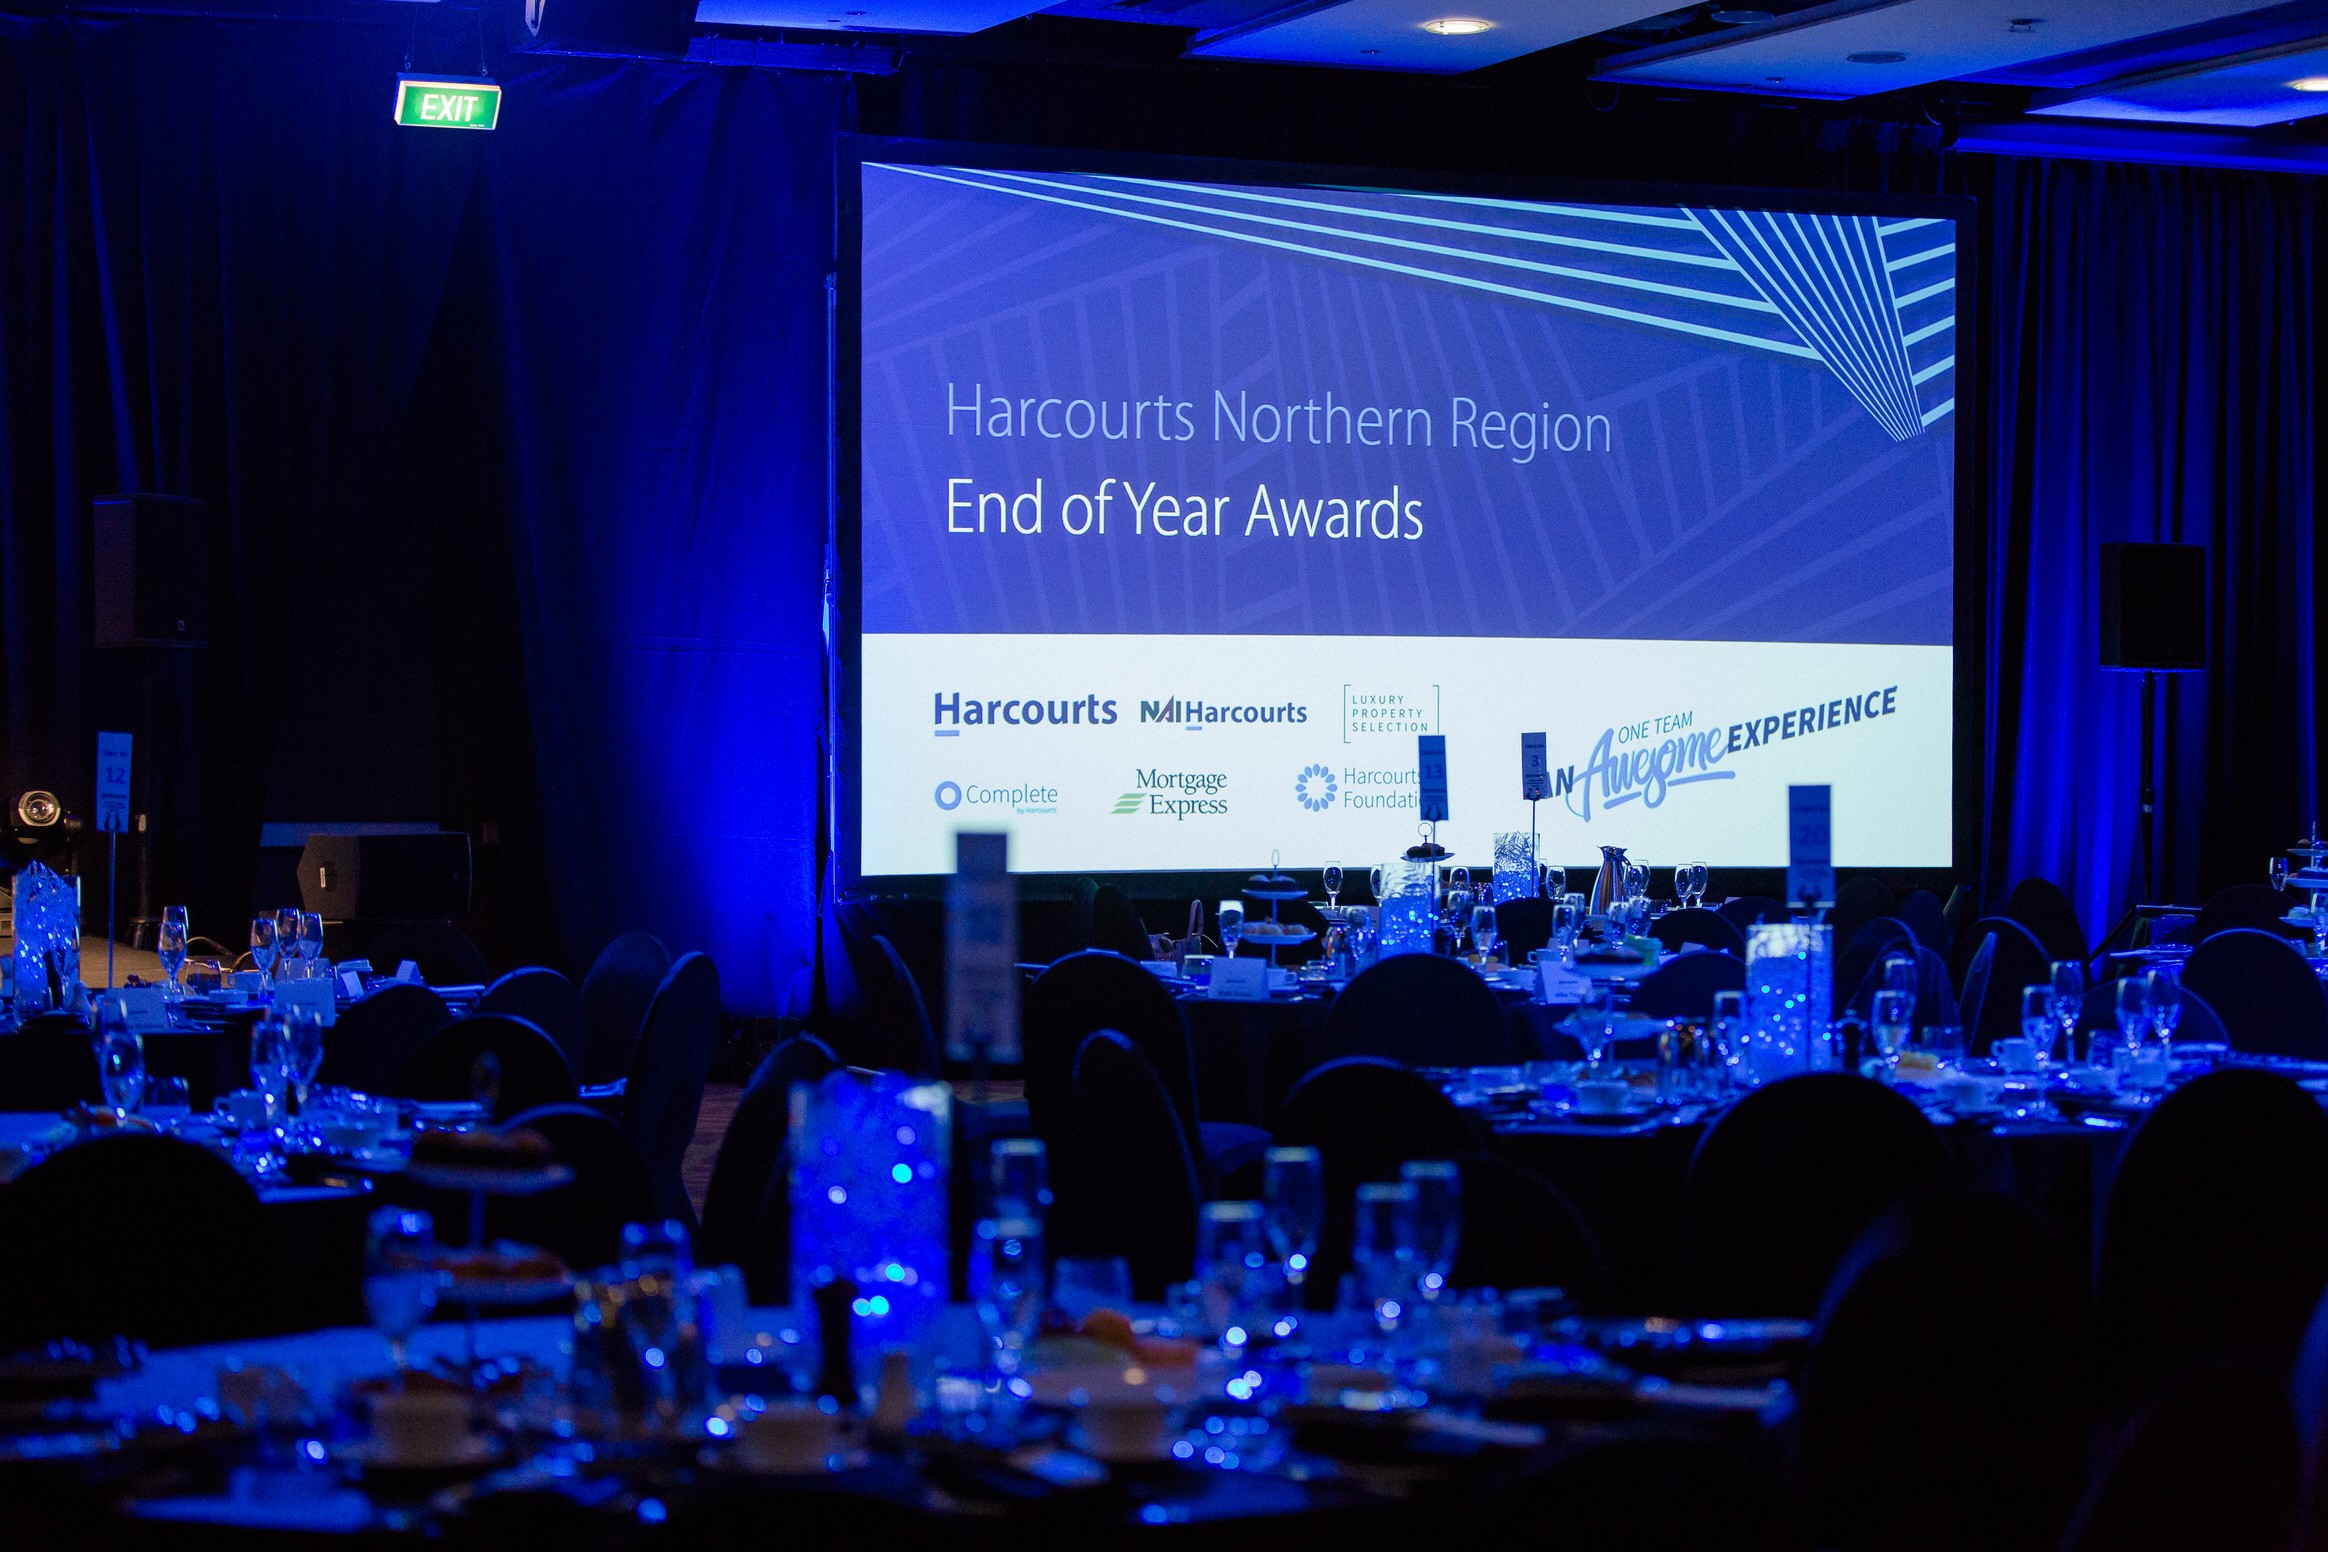 corporate, event, gala, dinner, awards, night, harcourts, auckland